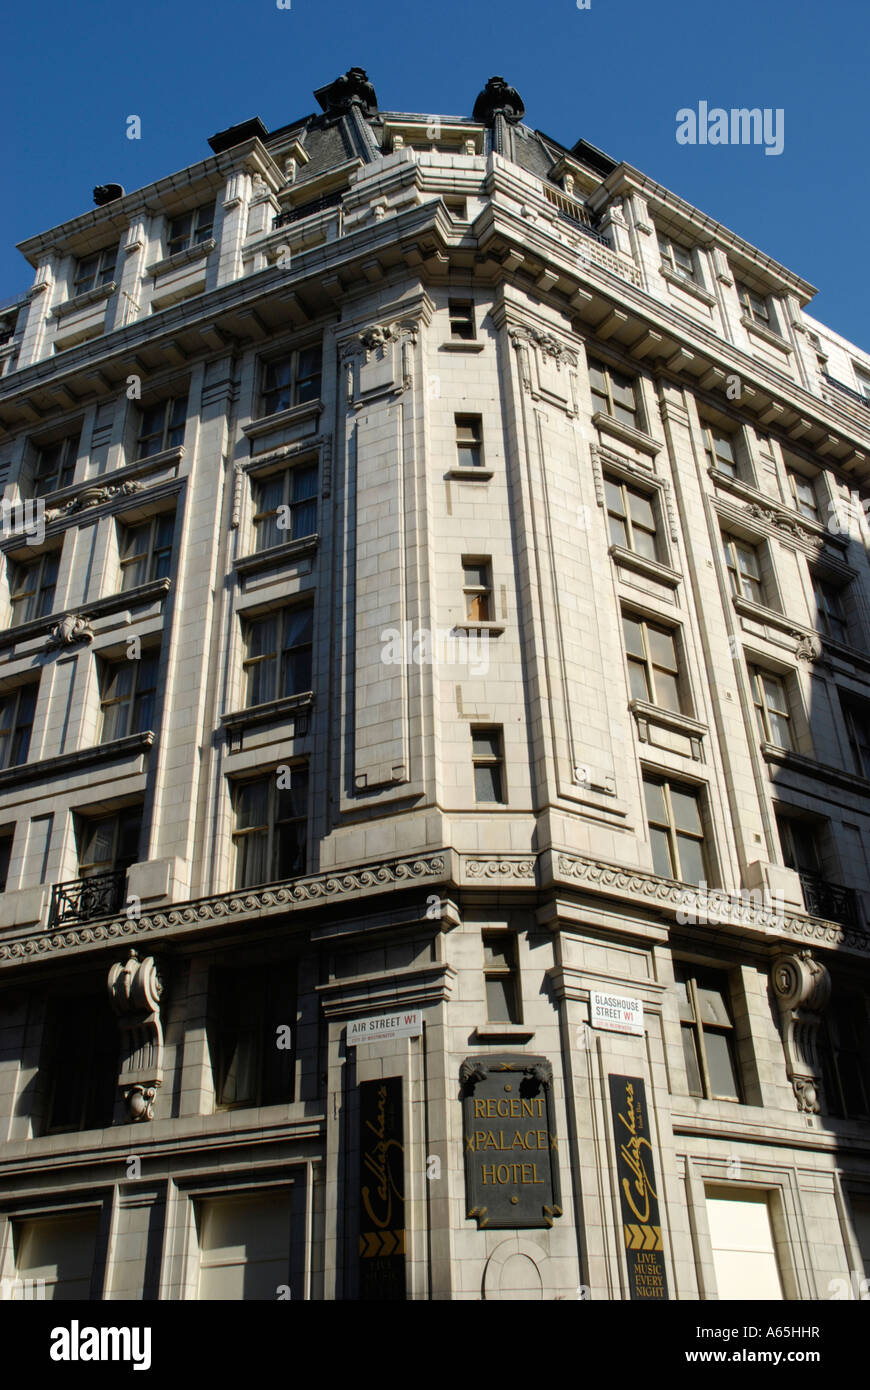 Exterior of the Regent Palace Hotel near Piccadilly Circus London